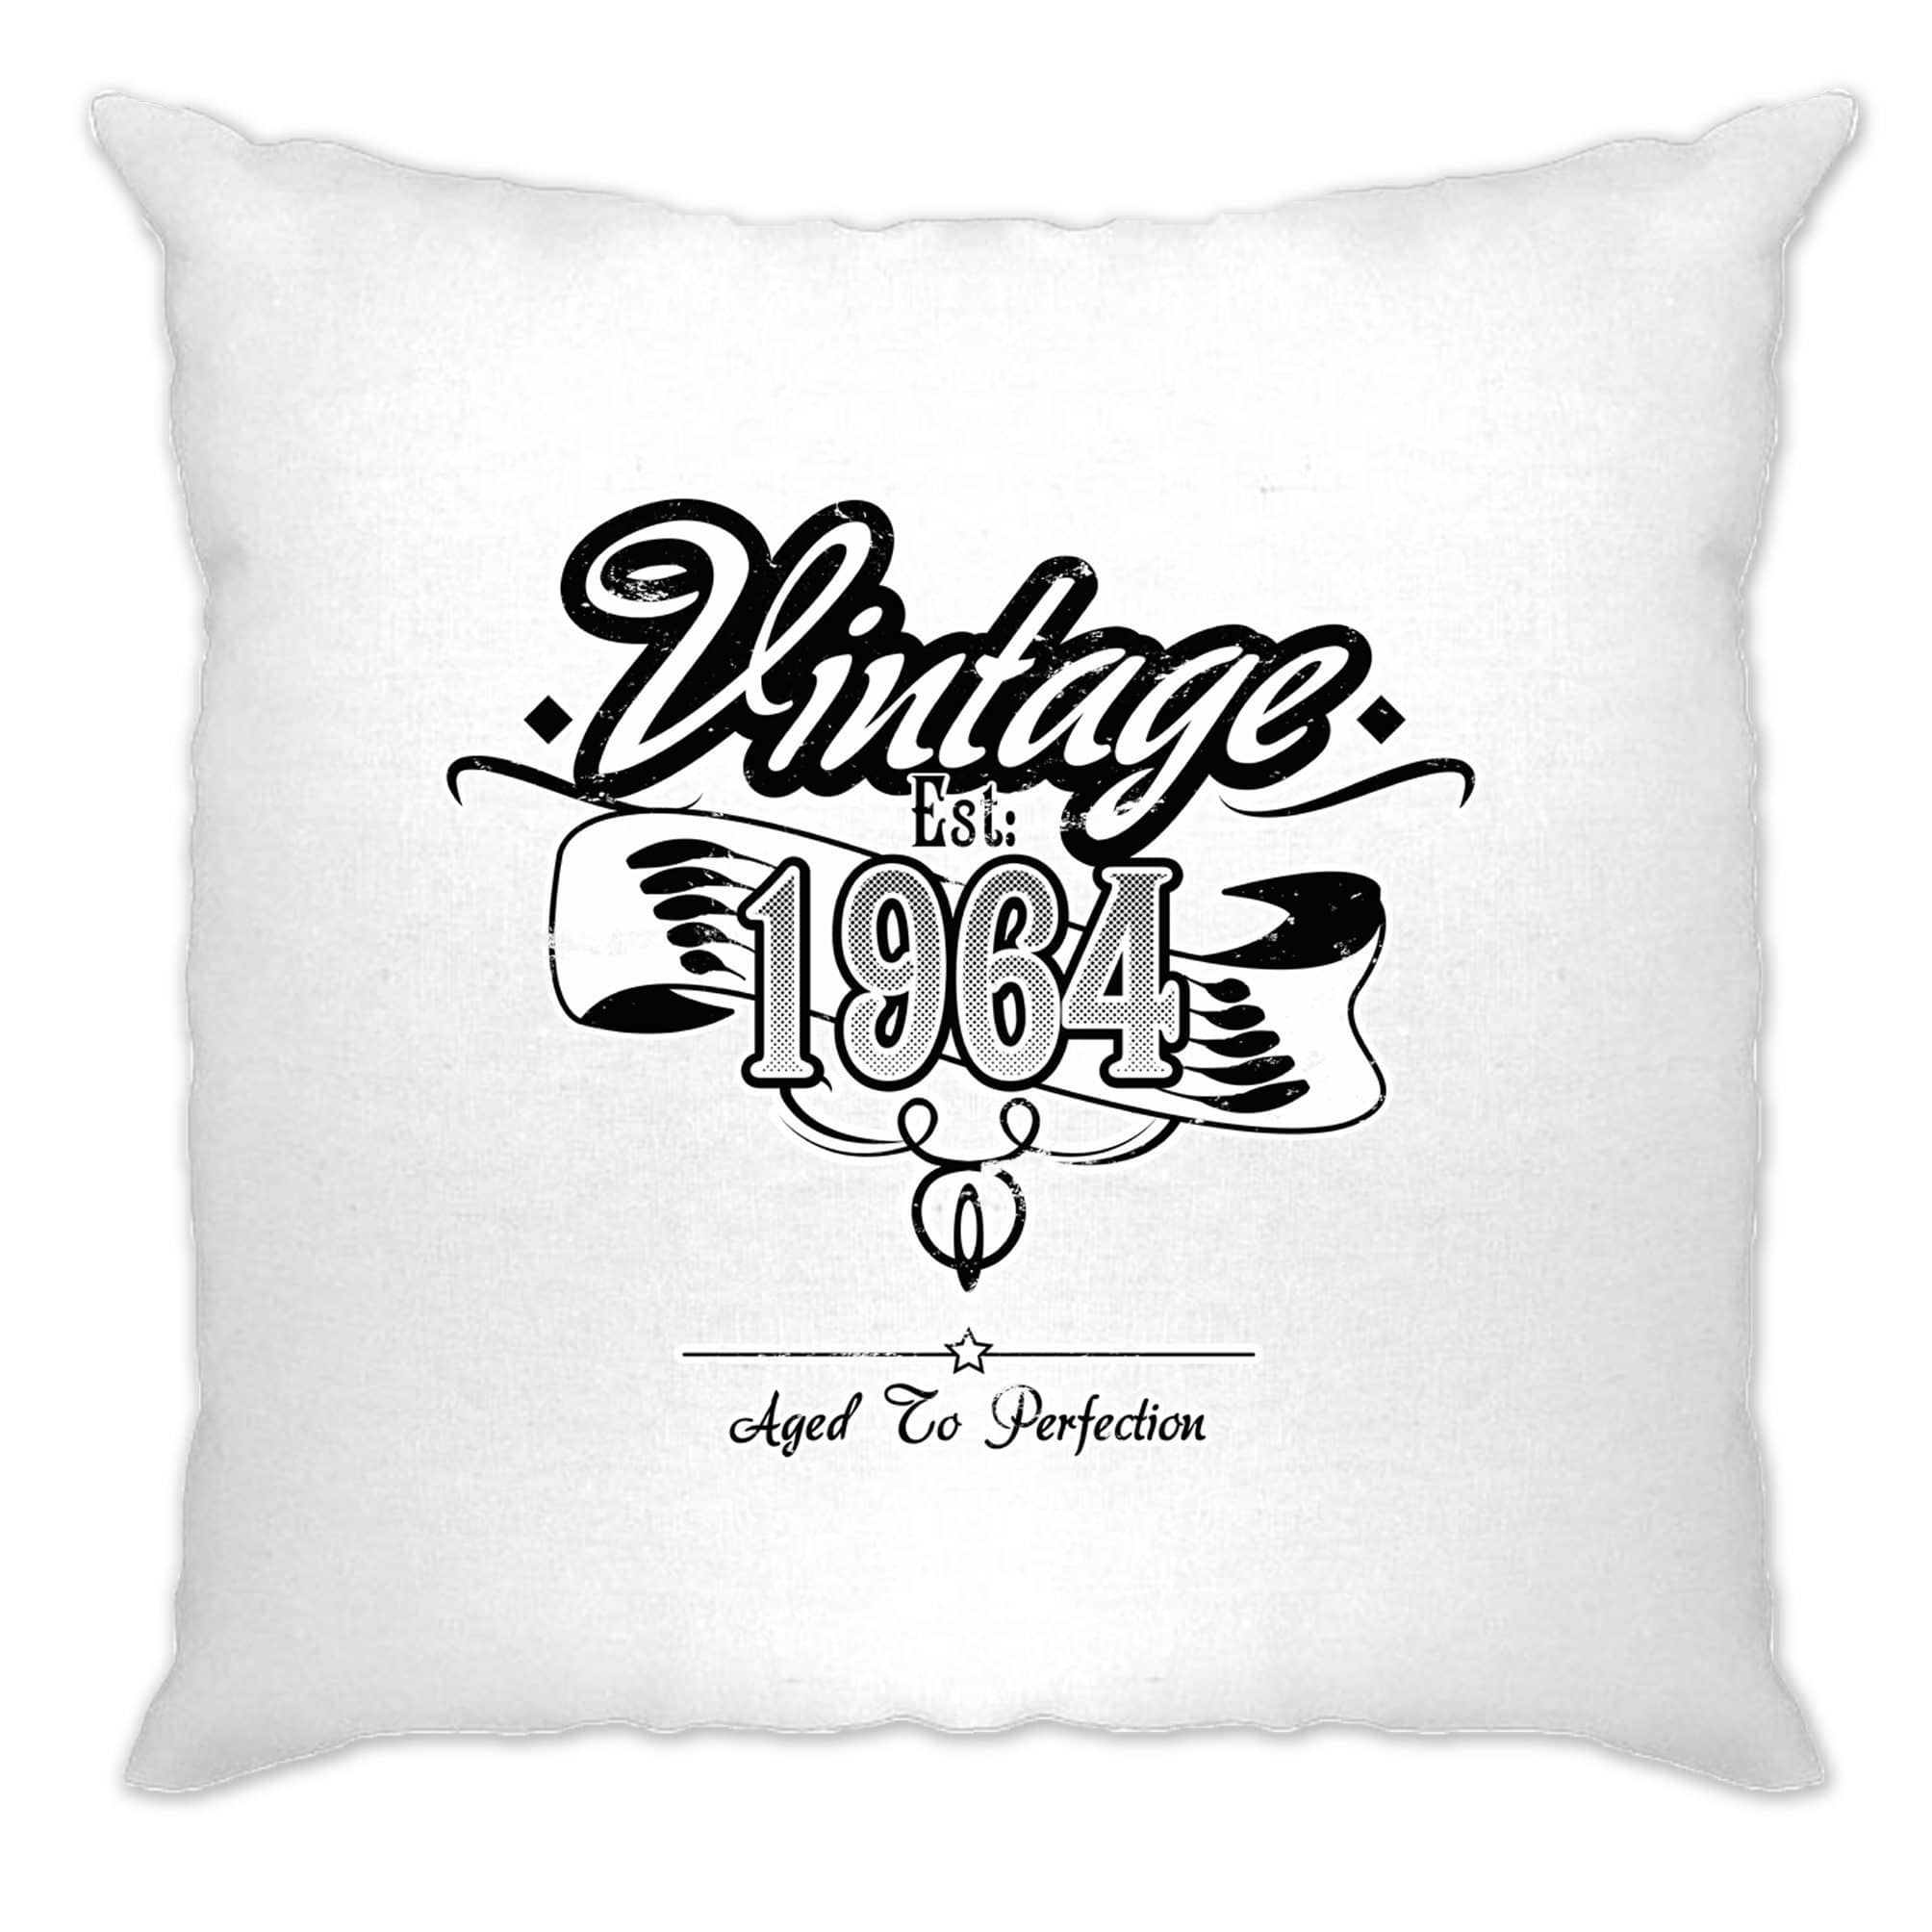 Birthday Cushion Cover Vintage Est 1964 Aged To Perfection